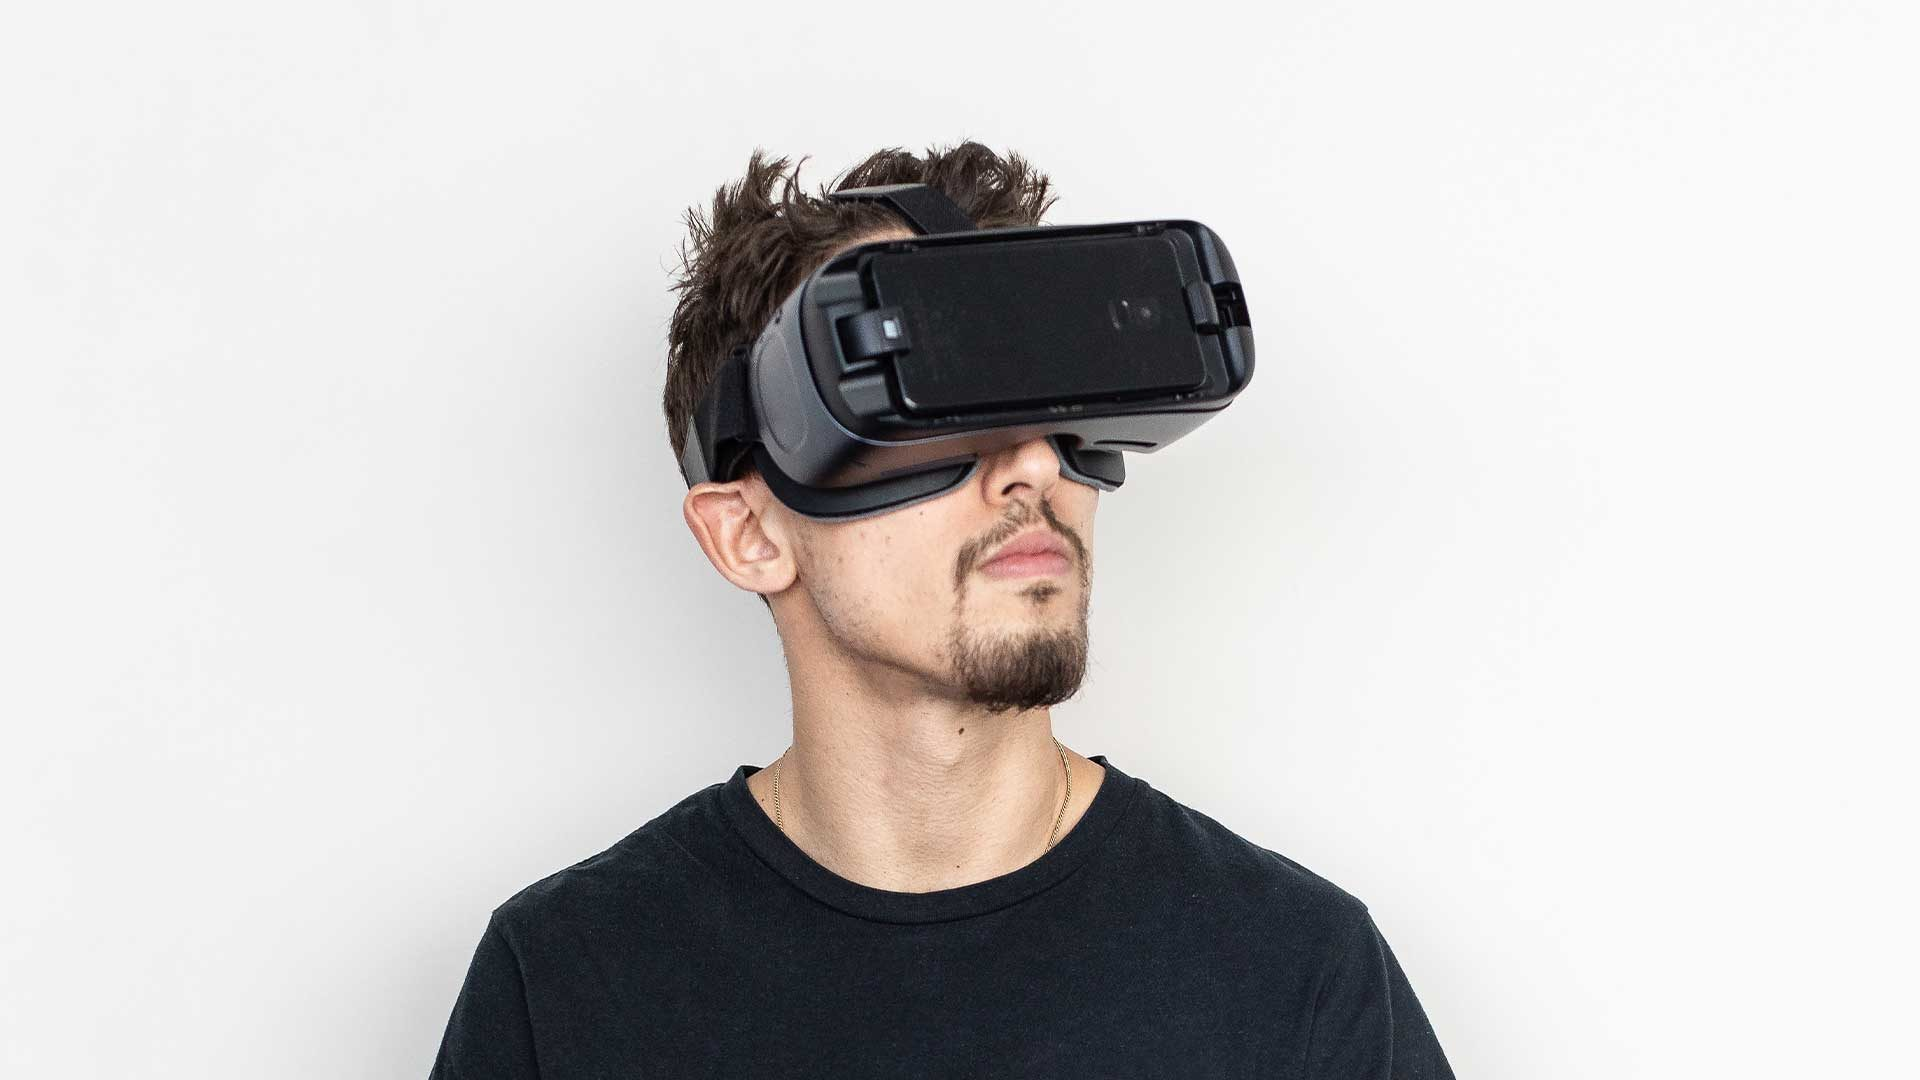 Aero Solutions VR sales experience